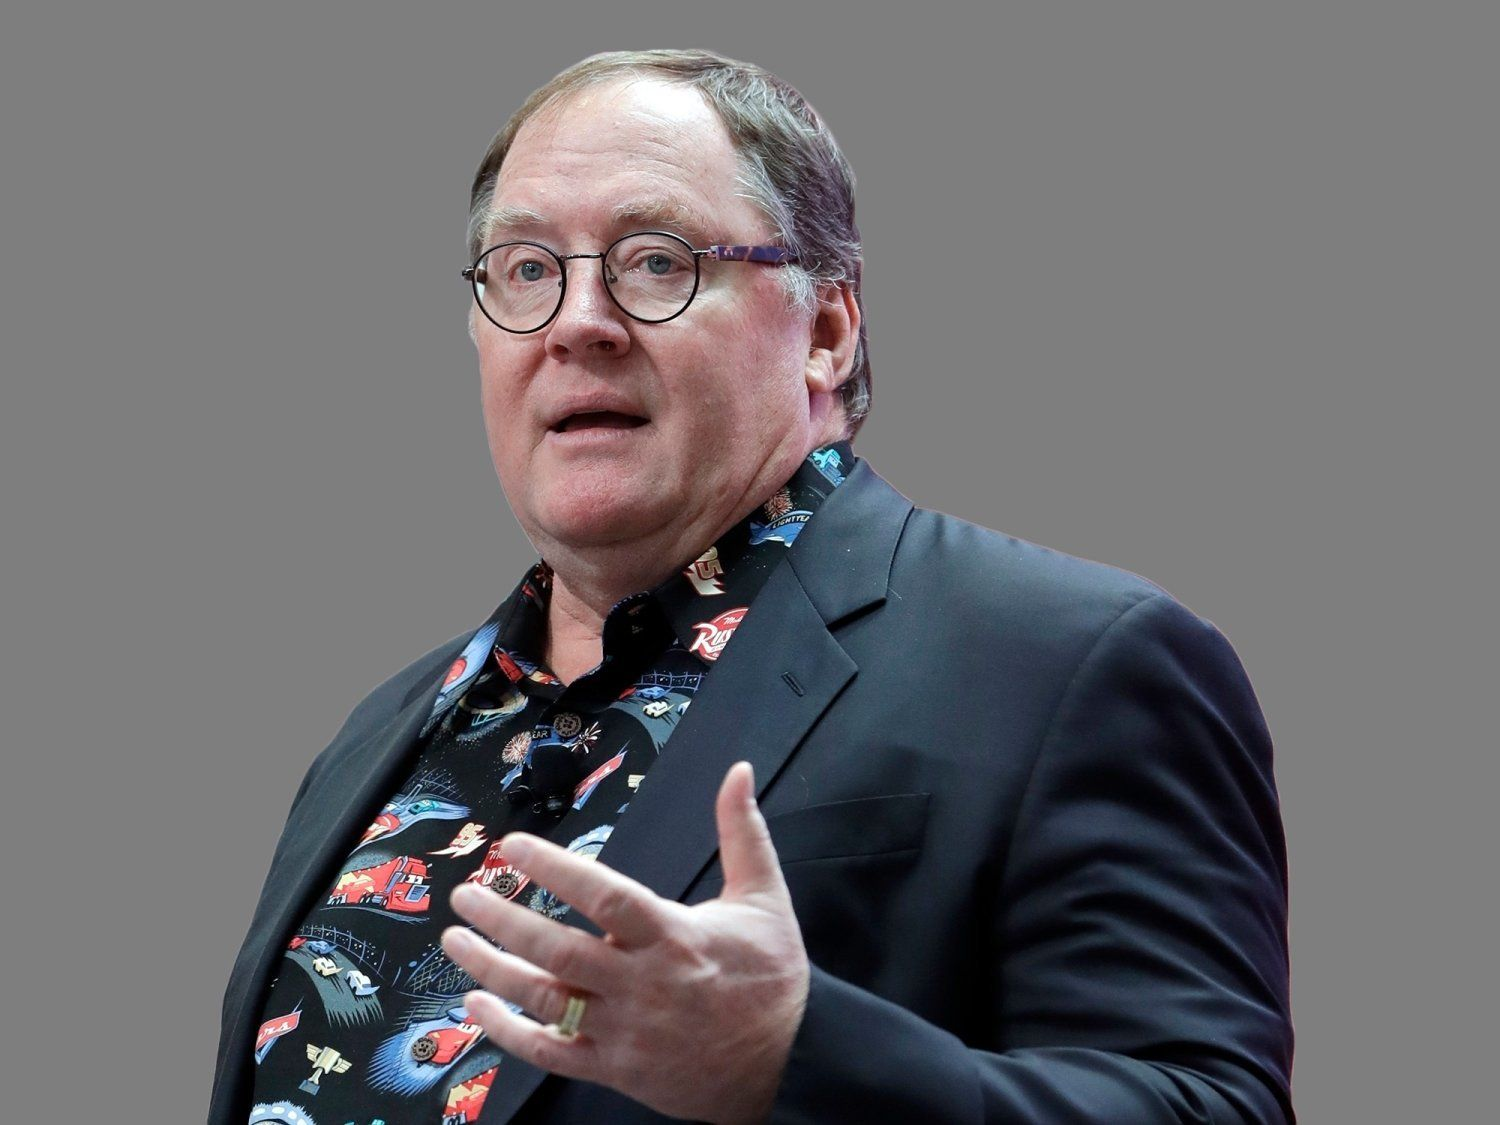 John Lasseter headshot, Pixar co-founder and Walt Disney Animation Studio chief, graphic element on gray